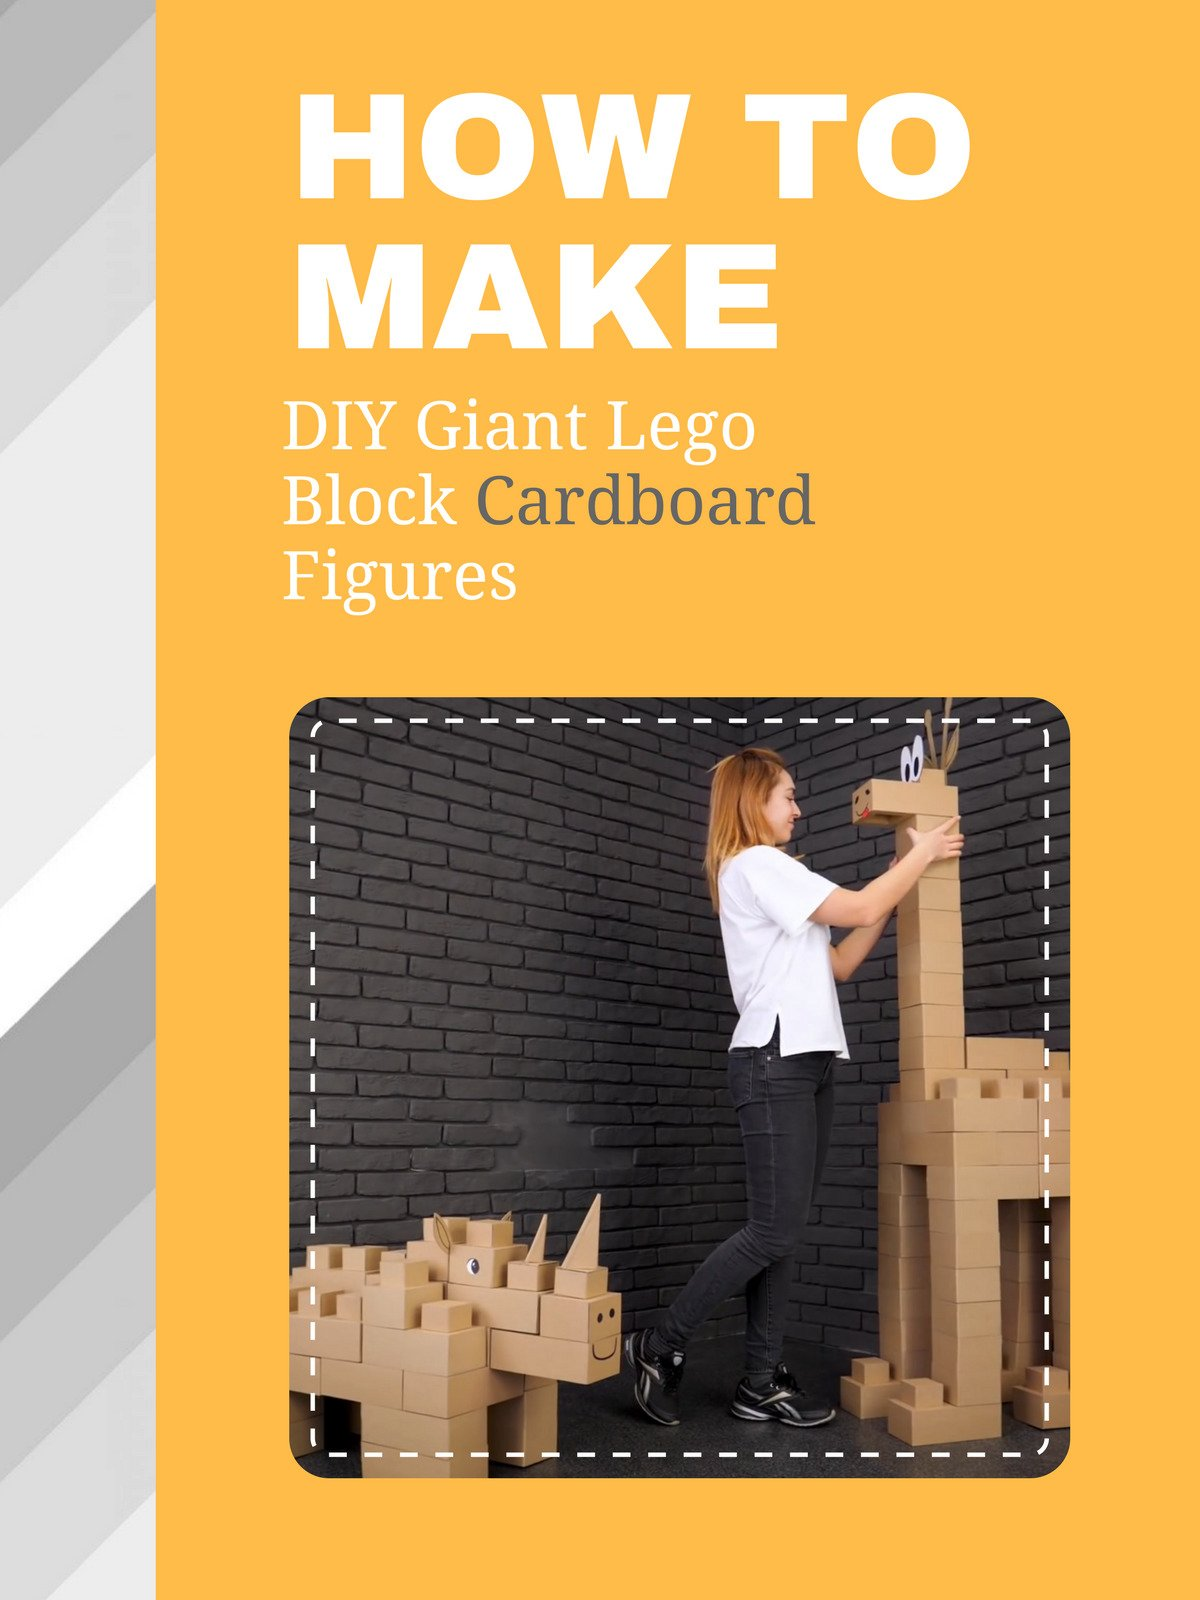 How To DIY Giant Lego Block Cardboard Figures